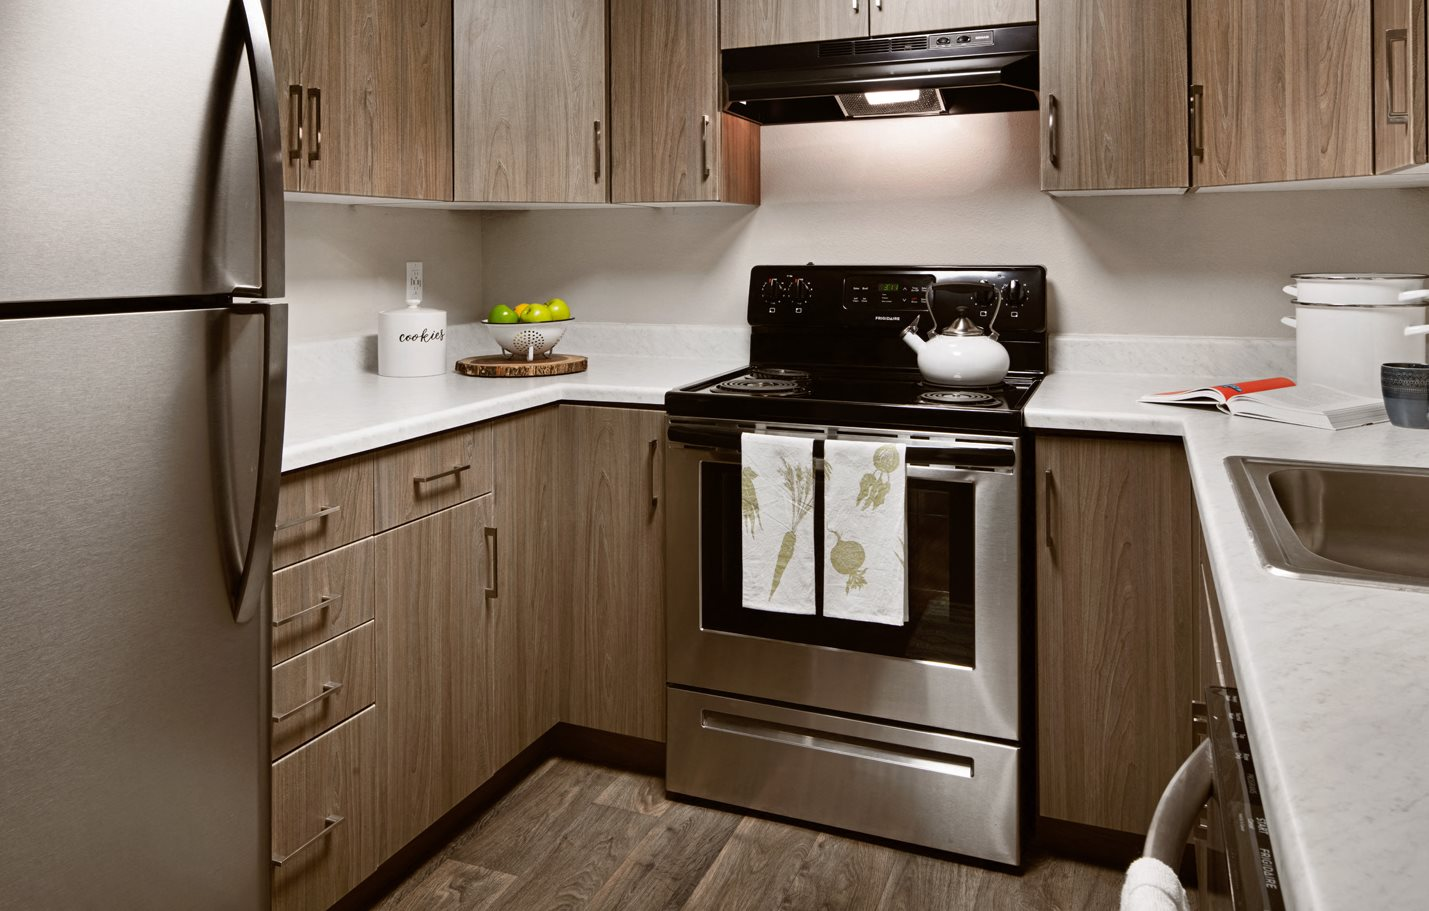 Clover Creek Apartments Kitchen Appliances and Cabinets